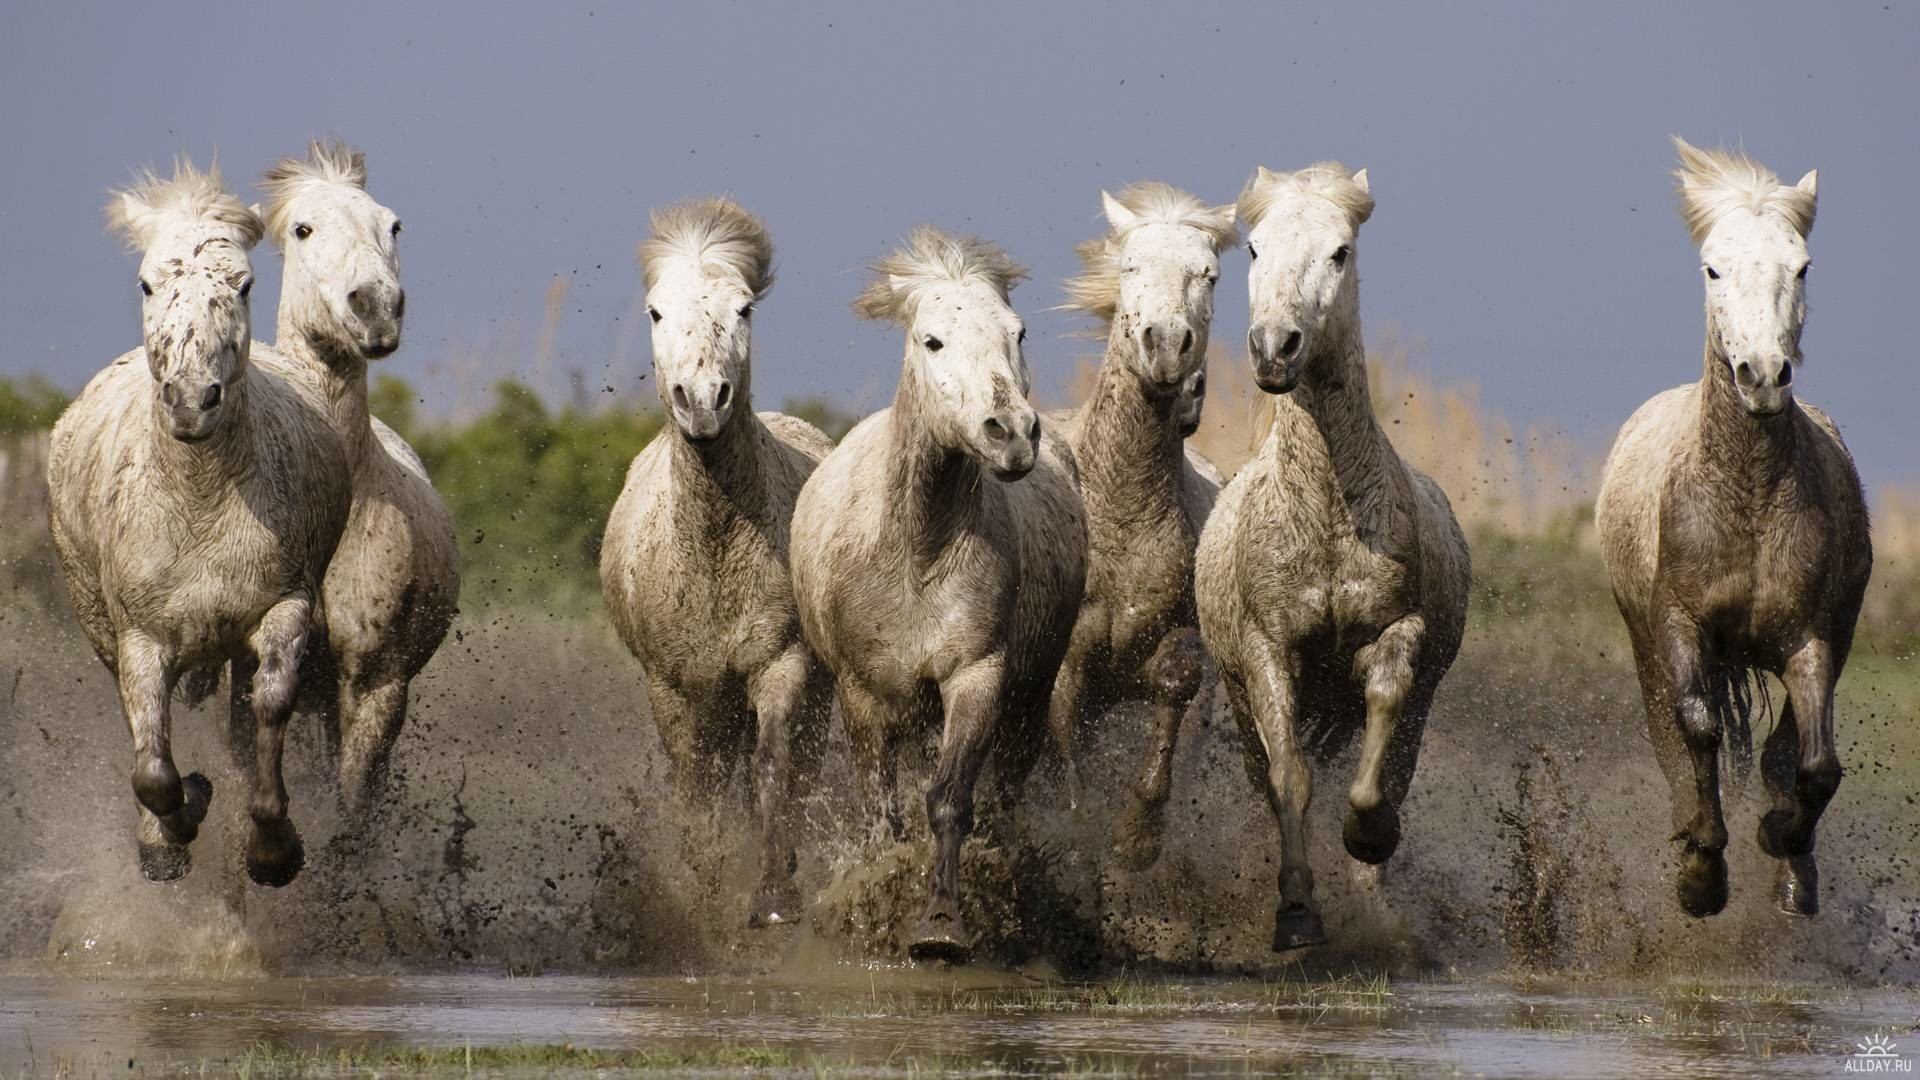 1920x1080 Image detail for -Photography - Camargue Horses Southern France free  wallpaper viewing .